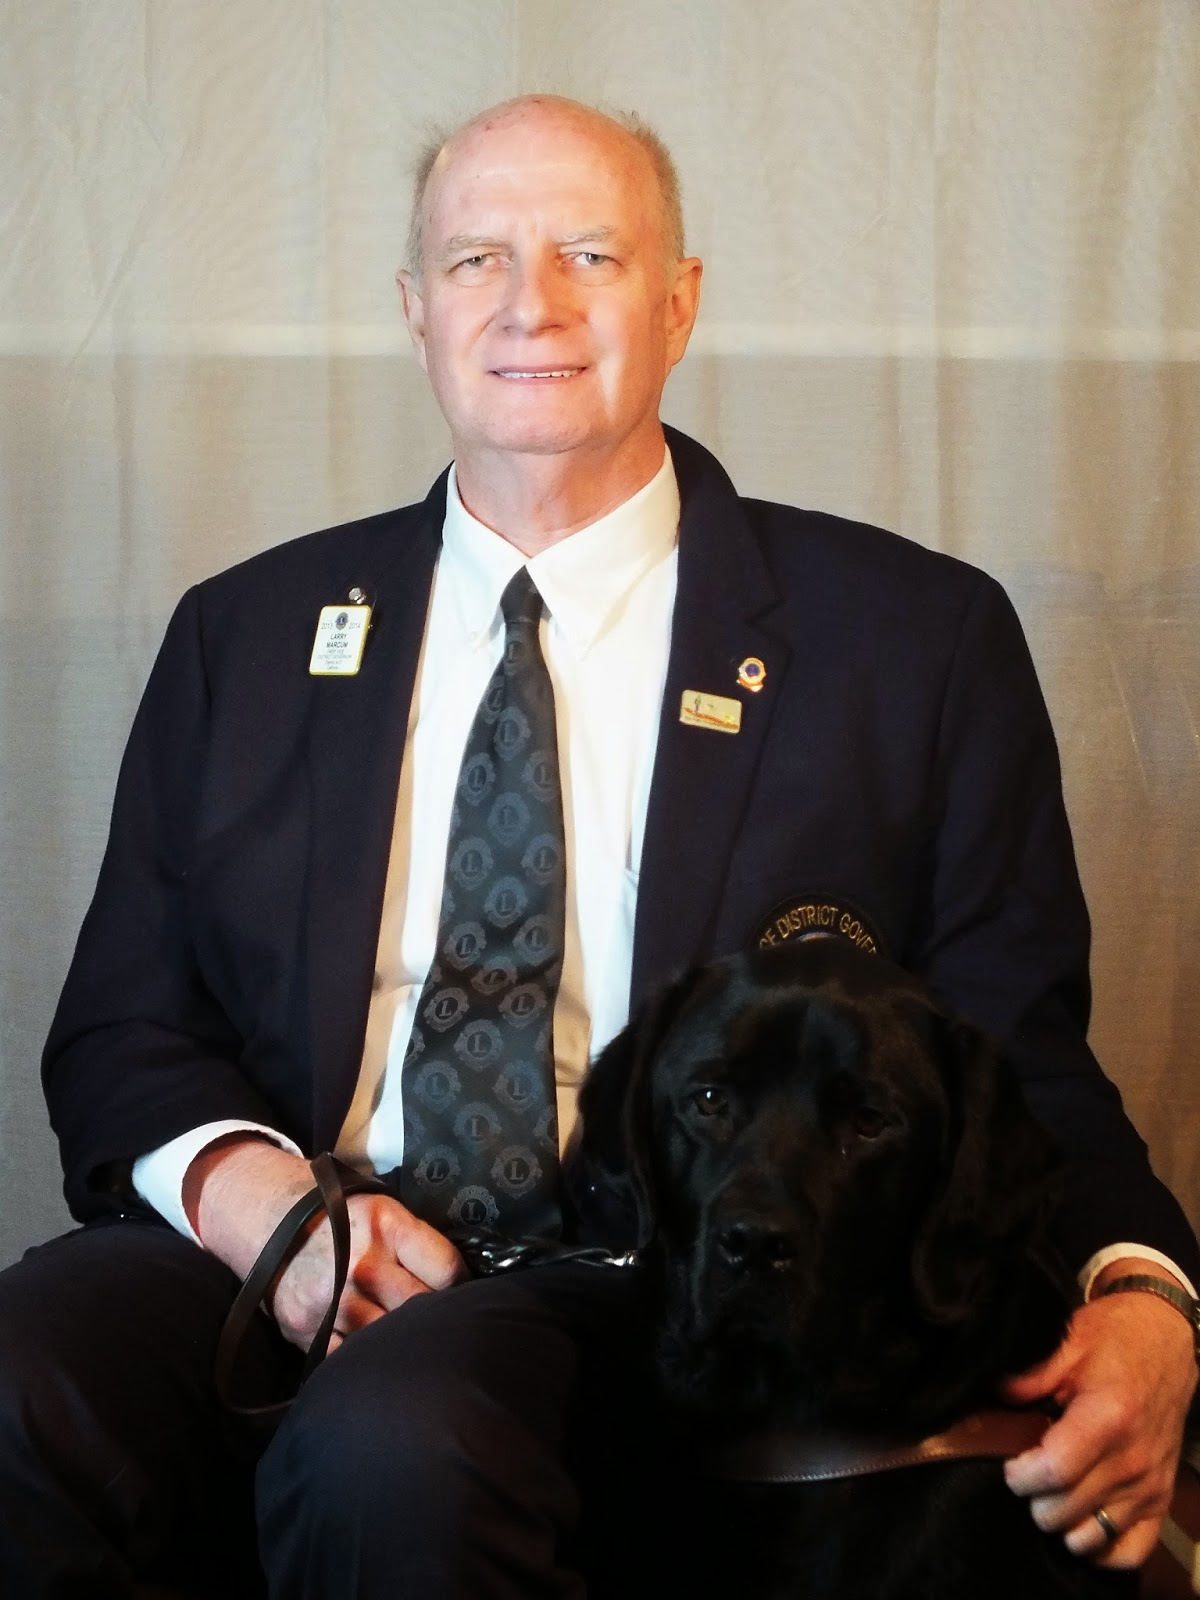 Portrait of Larry (wearing a dark suit and tie) sitting while proudly posing with his guide dog Brinkley (black Lab in harness).